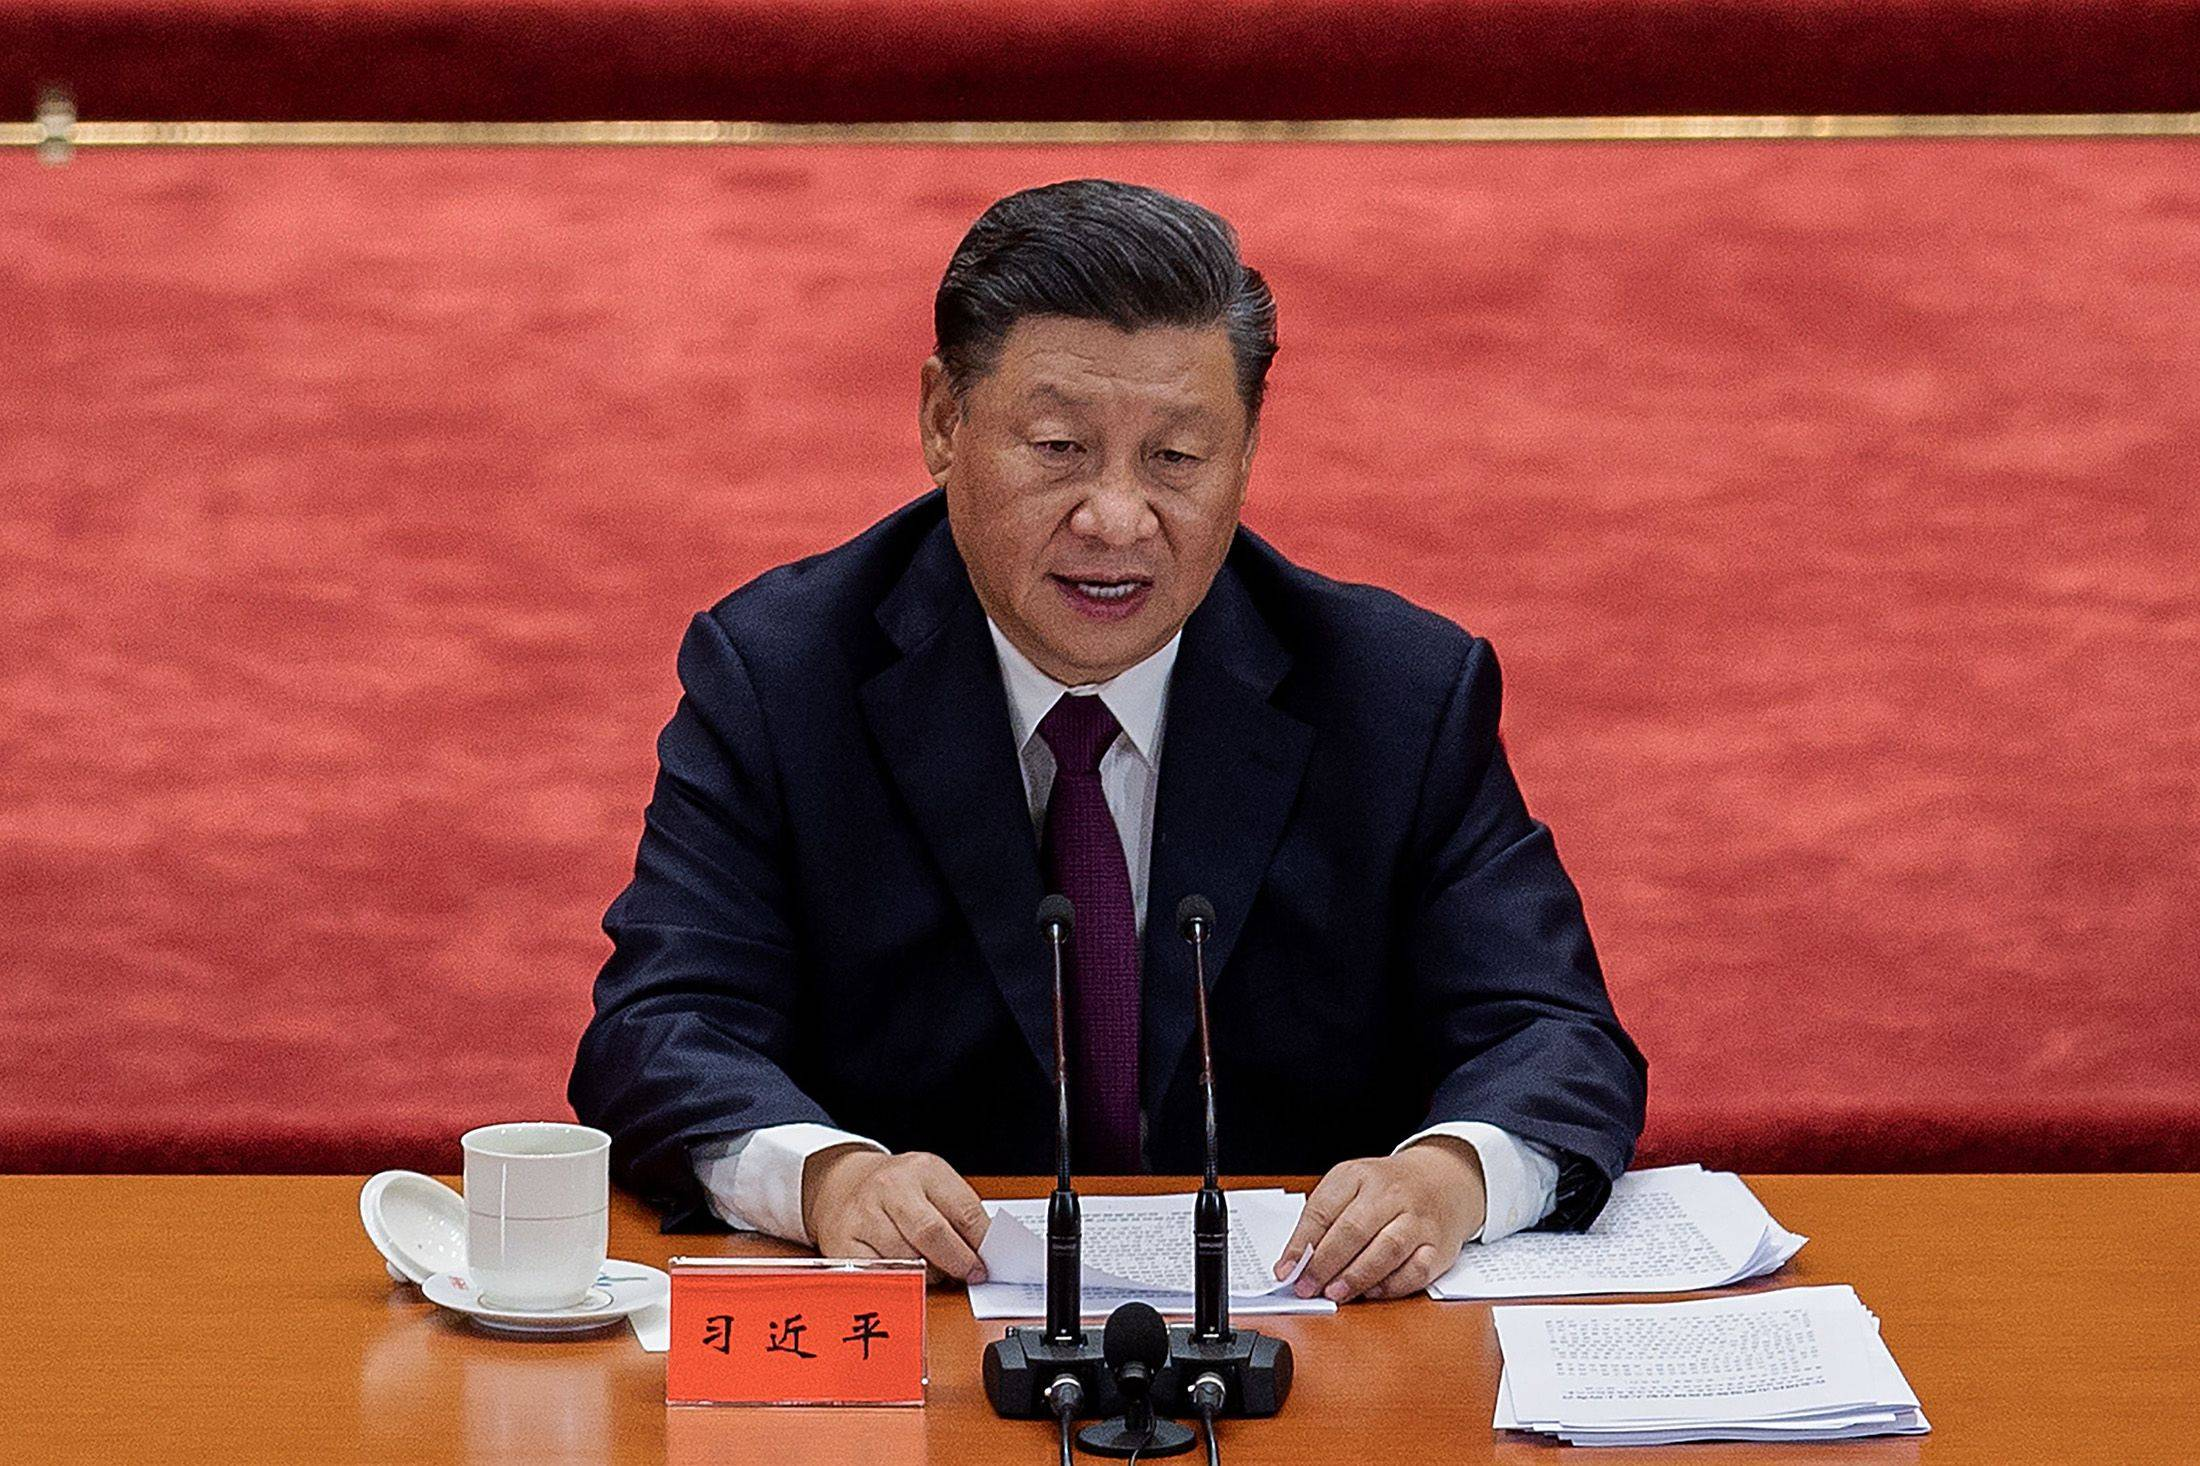 Chinese President Xi Jinping delivers a speech during a ceremony to honor people who fought against the COVID-19 coronavirus pandemic, at the Great Hall of the People in Beijing on Sept. 8. | AFP-JIJI / VIA GETTY IMAGES / VIA BLOOMBERG